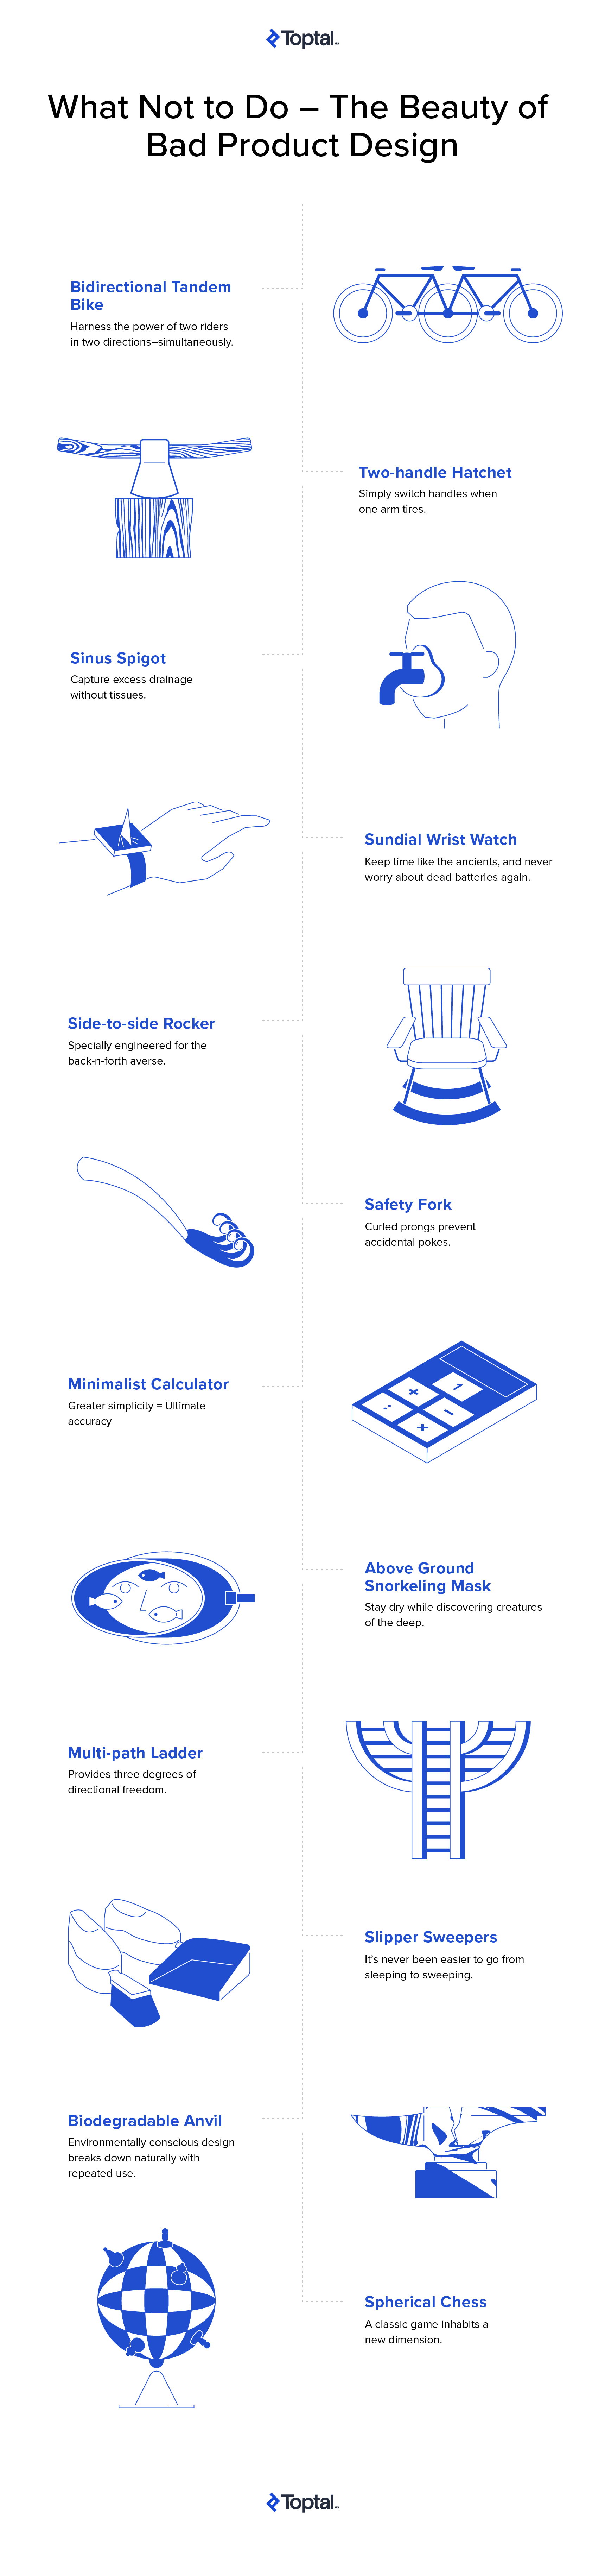 Bad Product Design Infographic